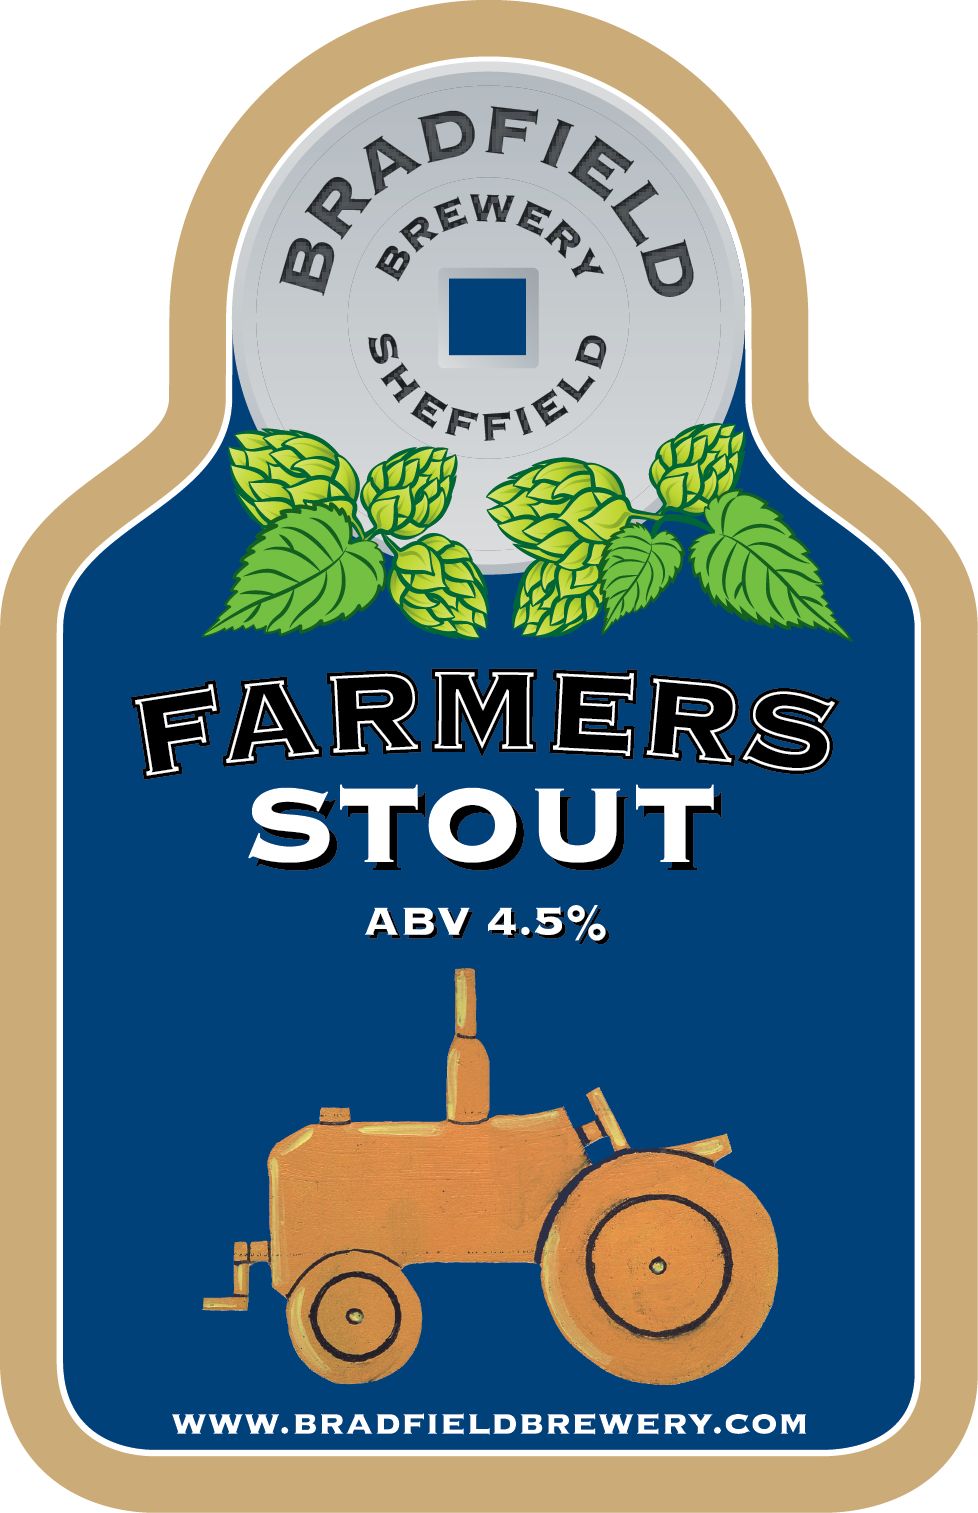 Double Win for Farmers Stout!